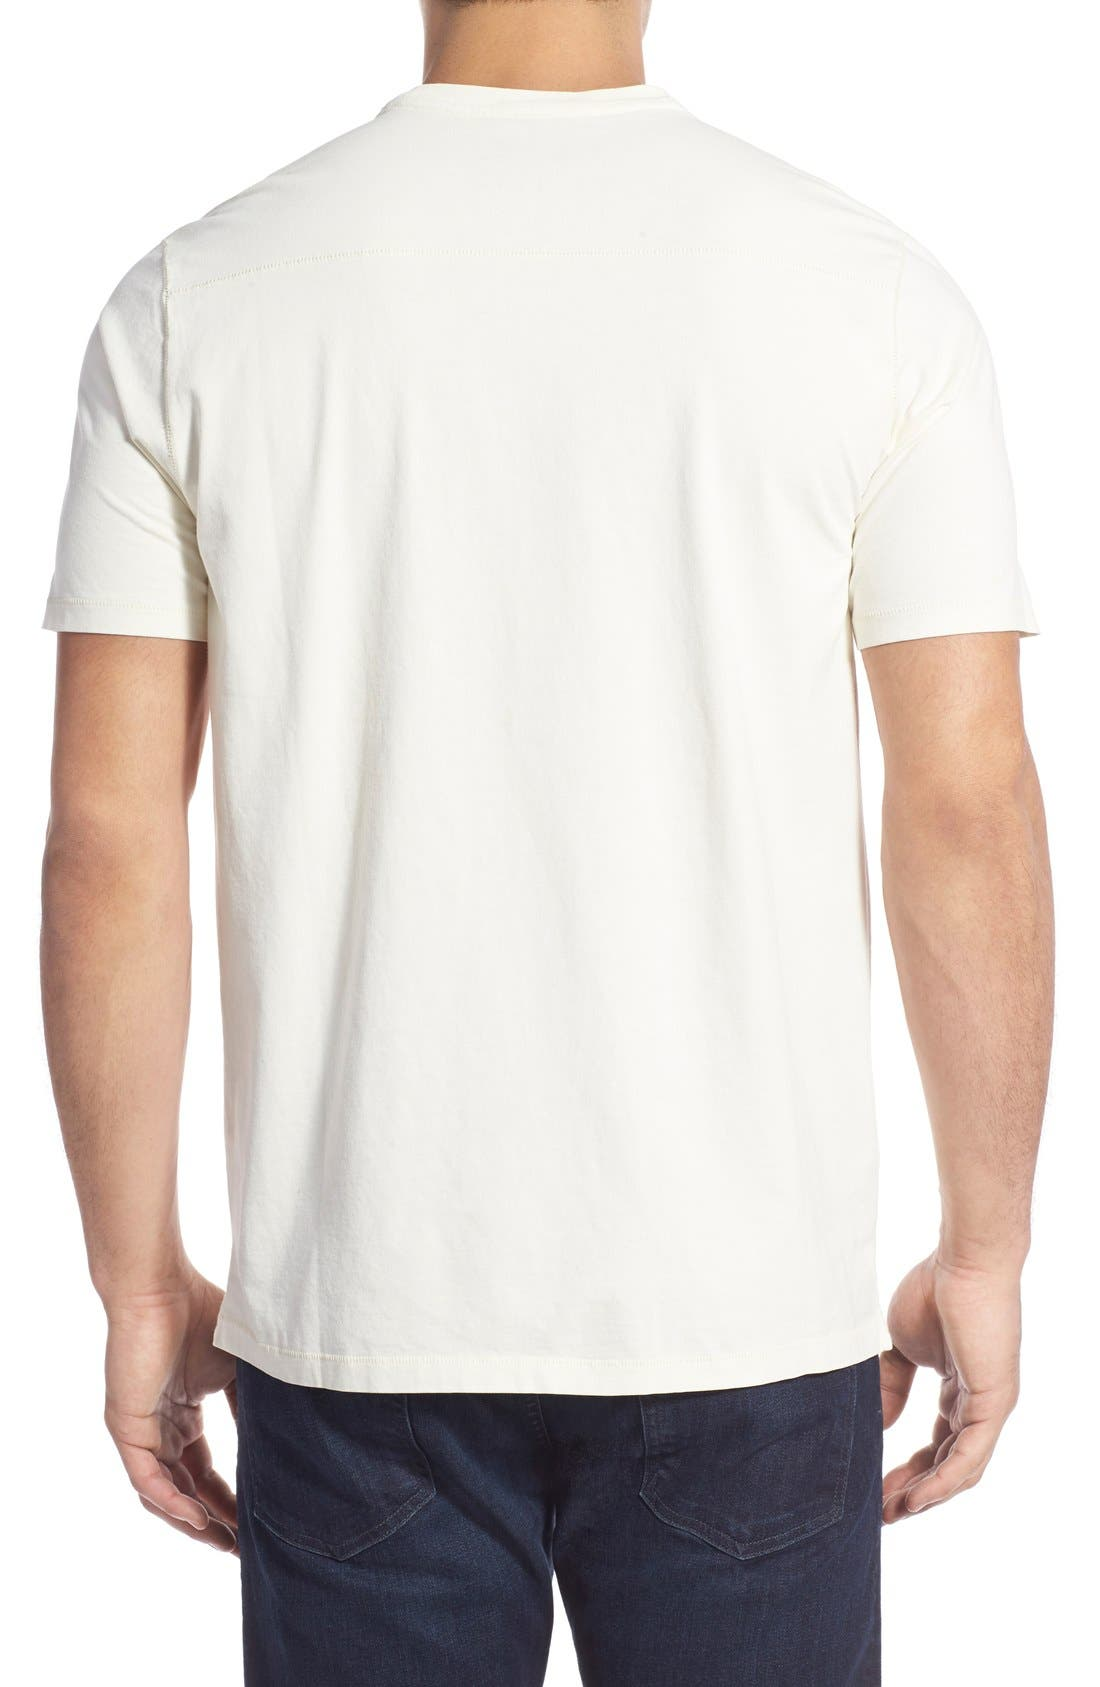 'New Bahama Reef' Island Modern Fit Pima Cotton Pocket T-Shirt,                             Alternate thumbnail 3, color,                             100